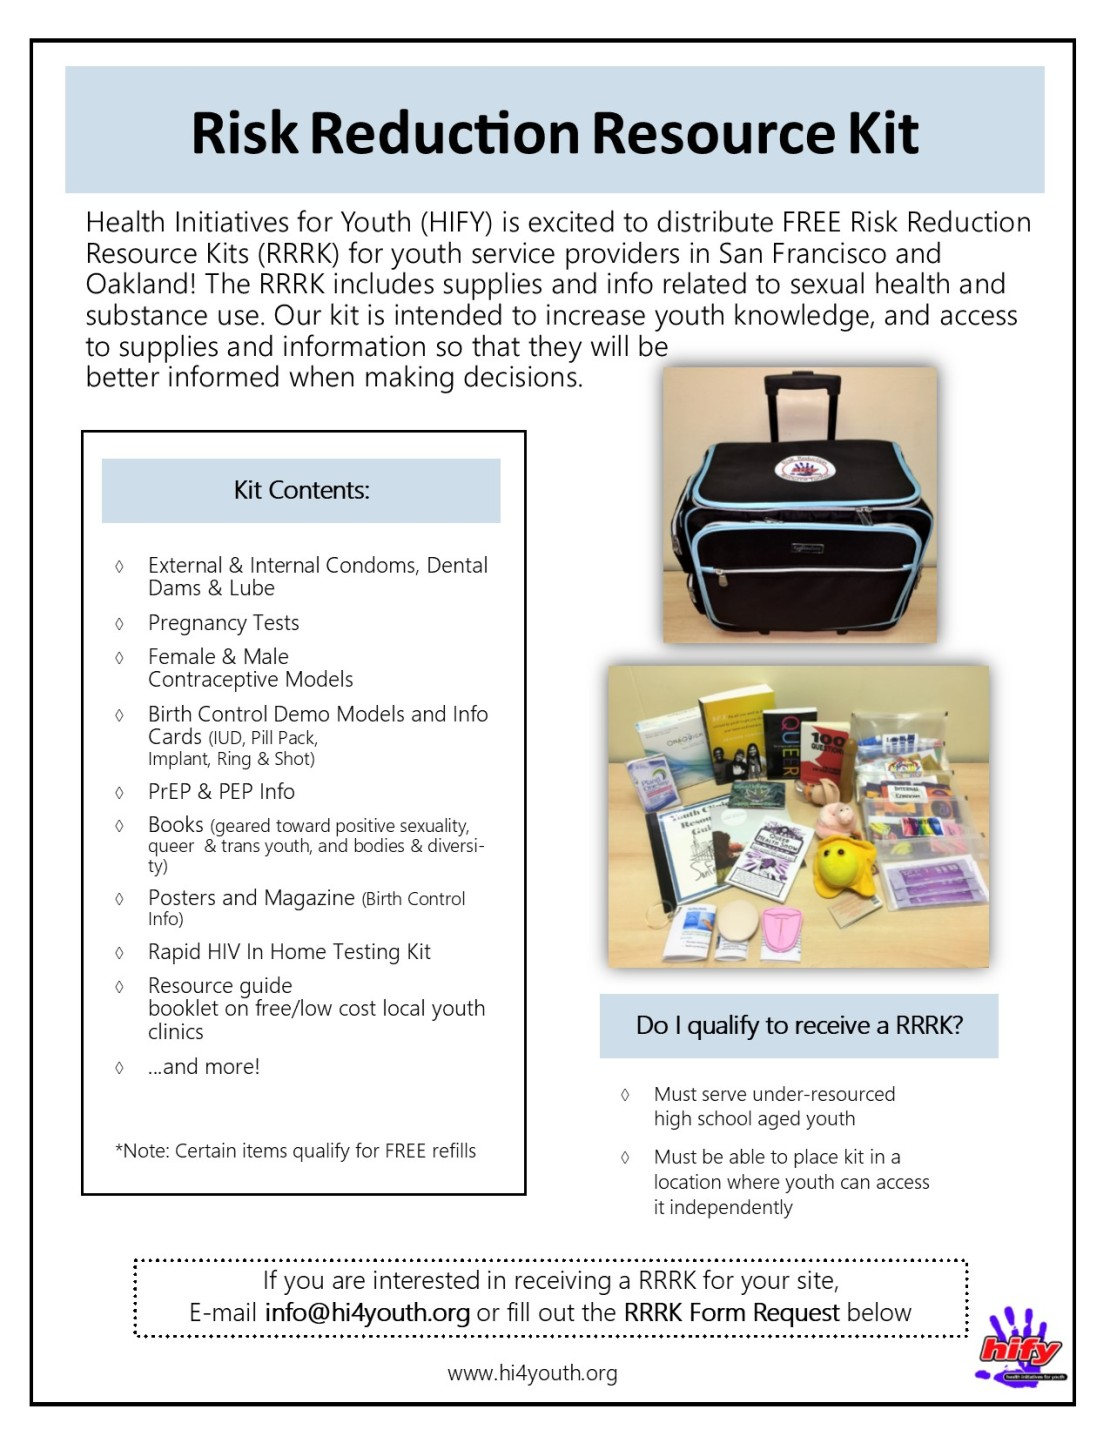 FREE Risk Reduction Resource Kits